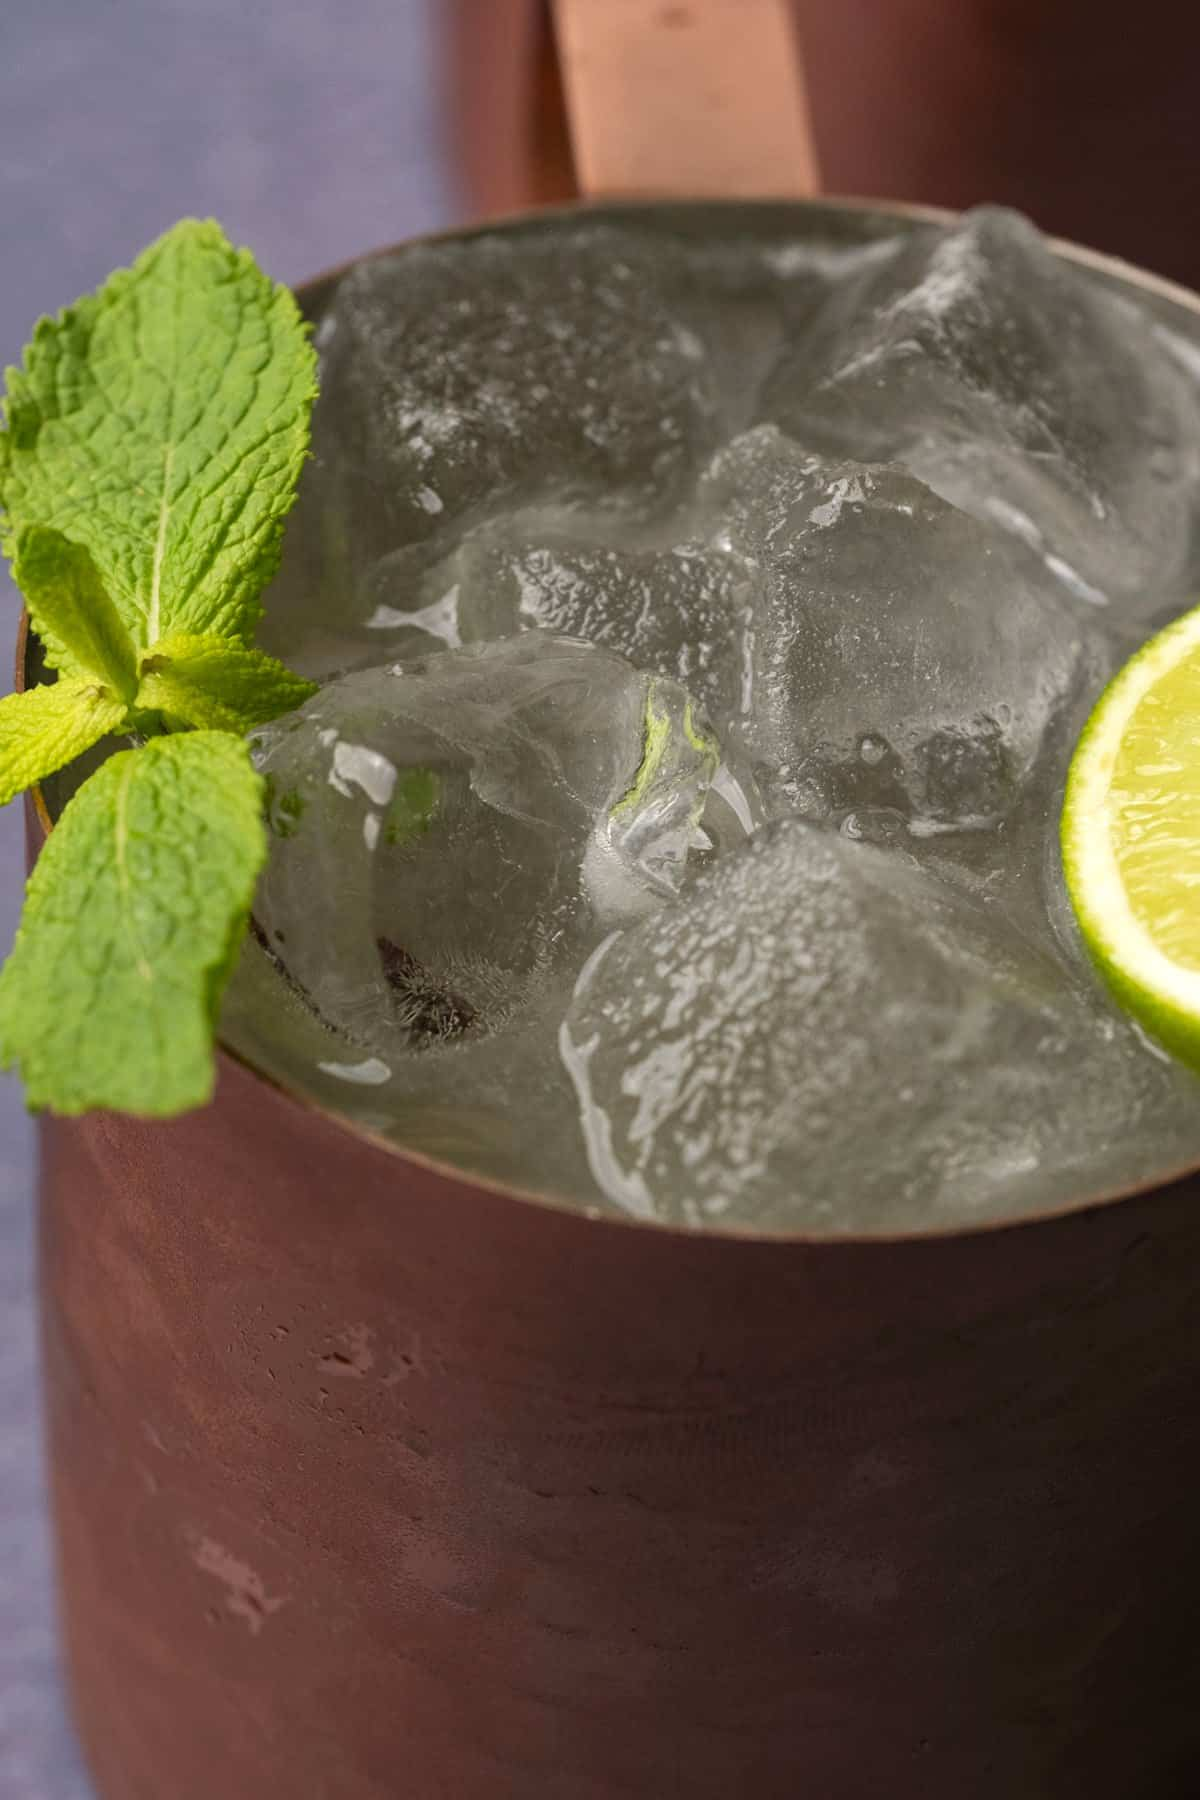 Moscow mule in a copper mug with a lime wedge and fresh mint.